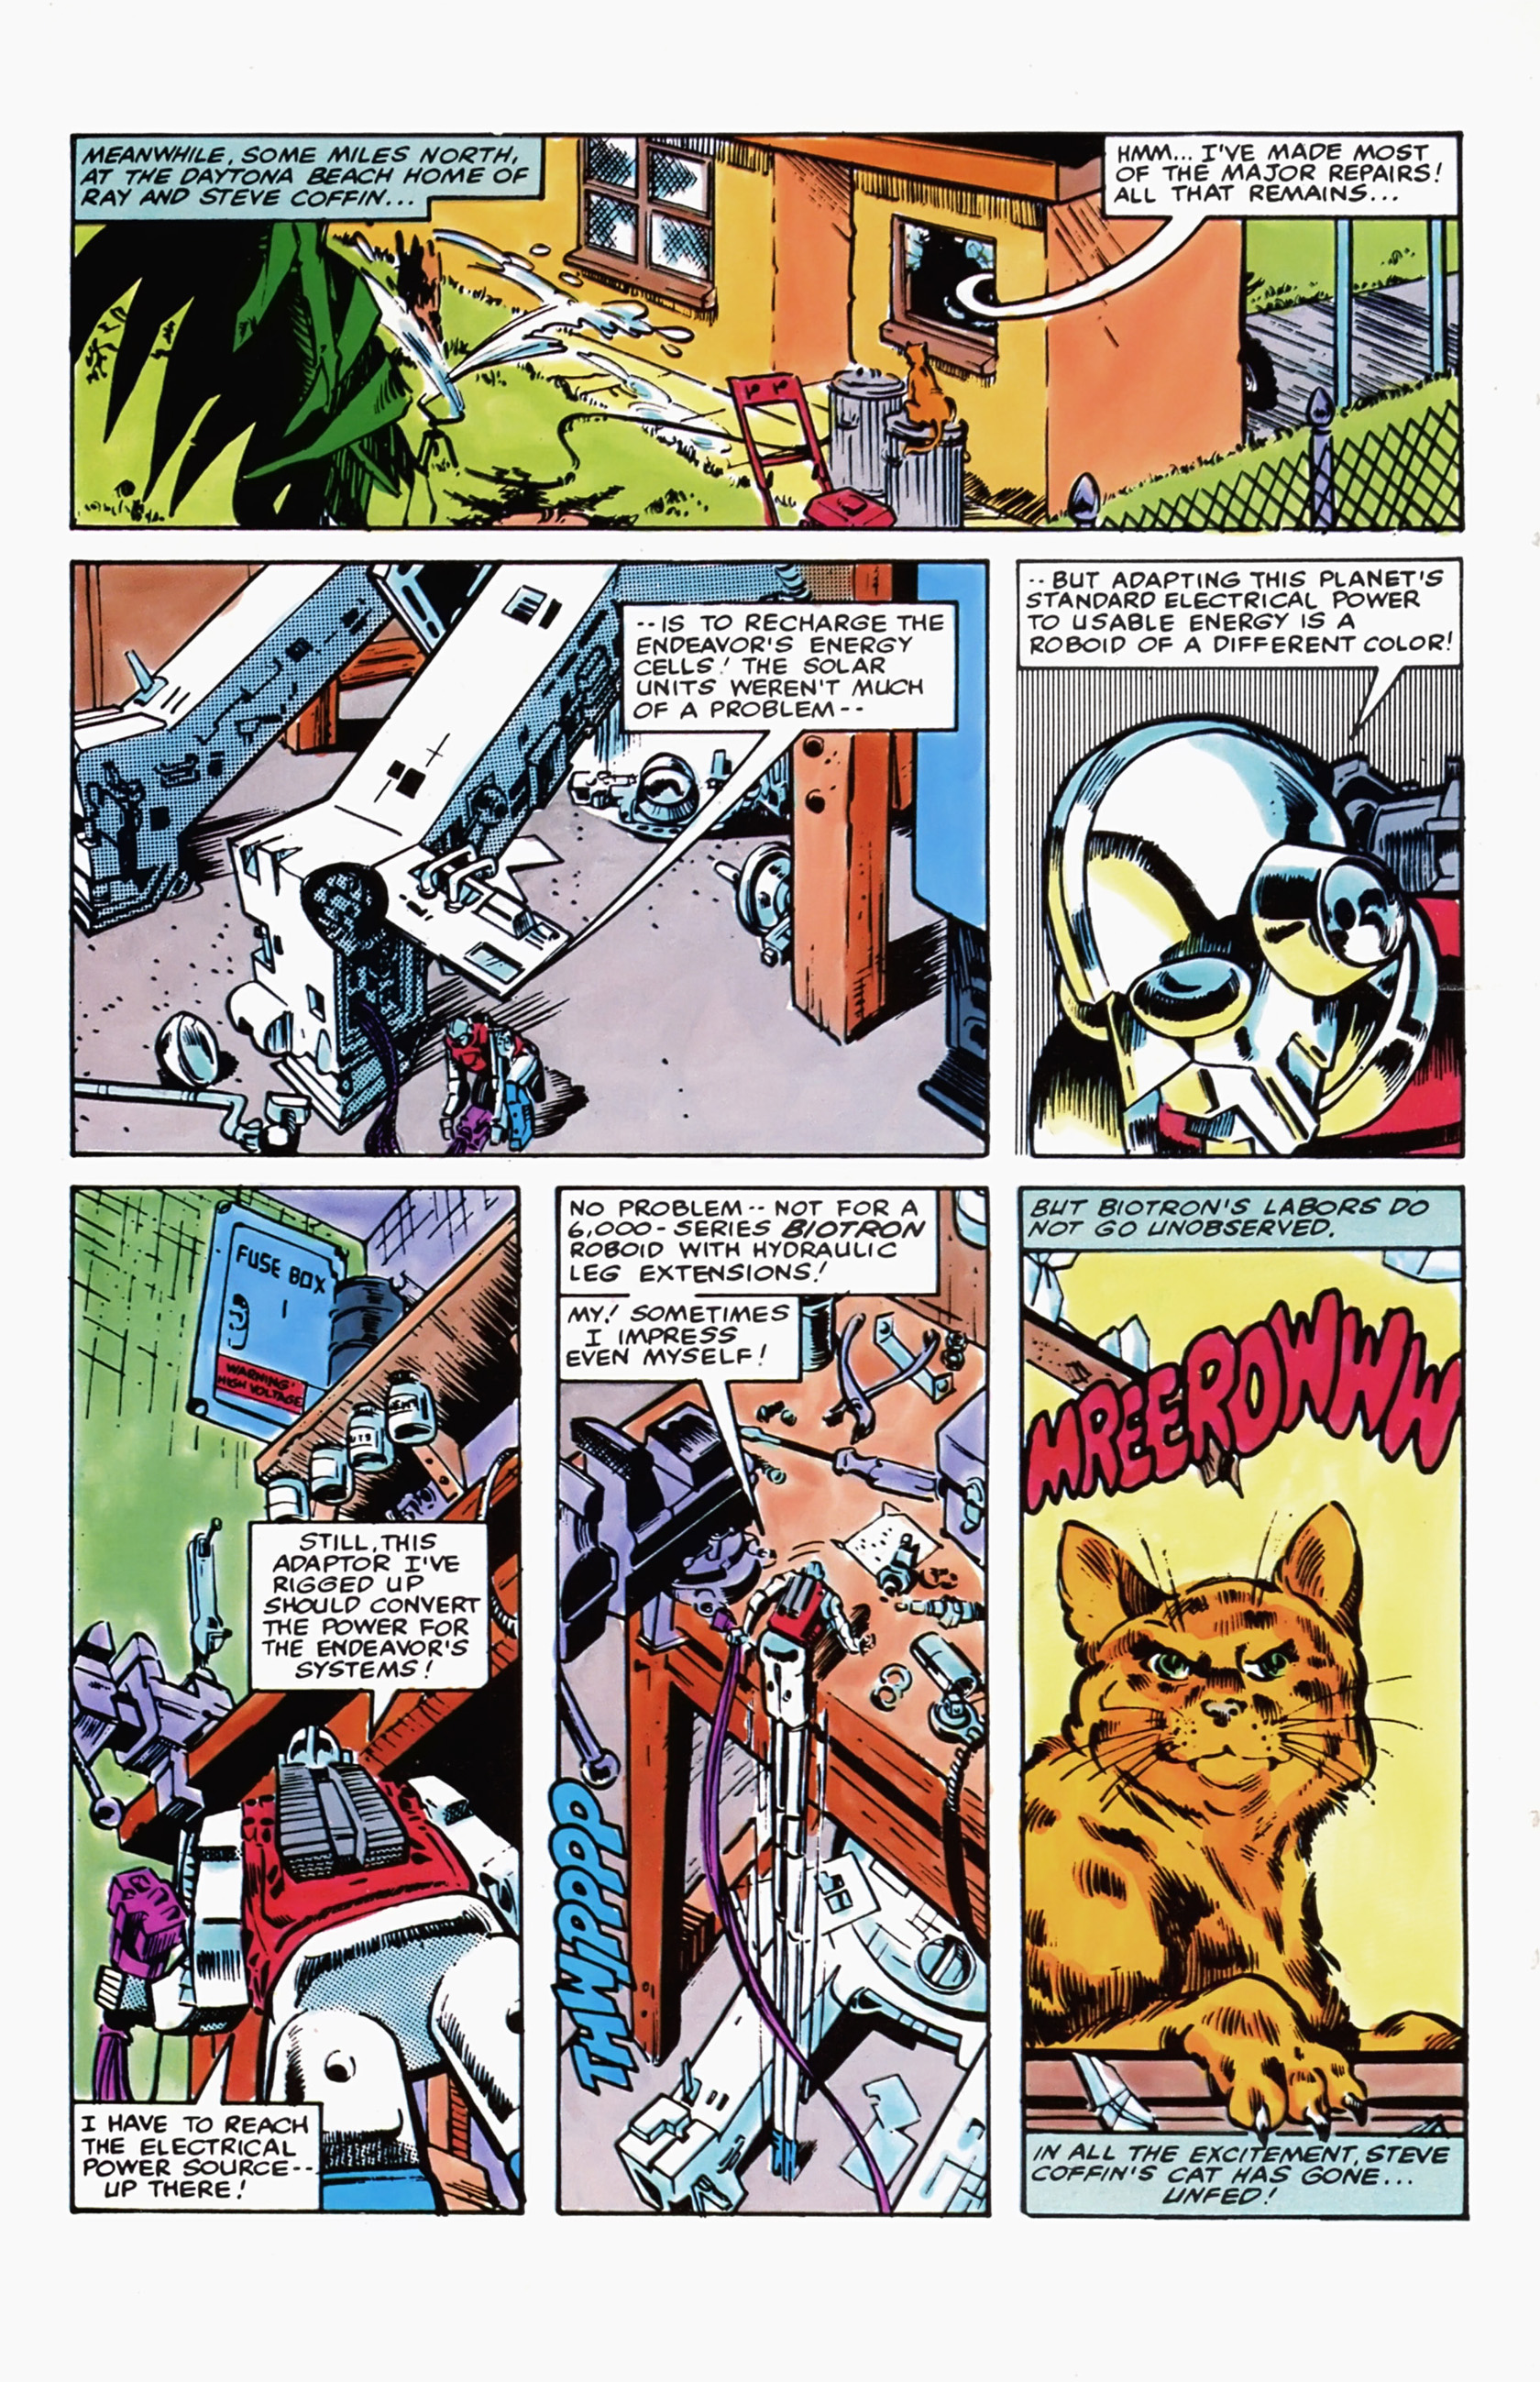 Micronauts 1979 5 Read Issue Online All Cartoon Electrical Fuse Box Page 4